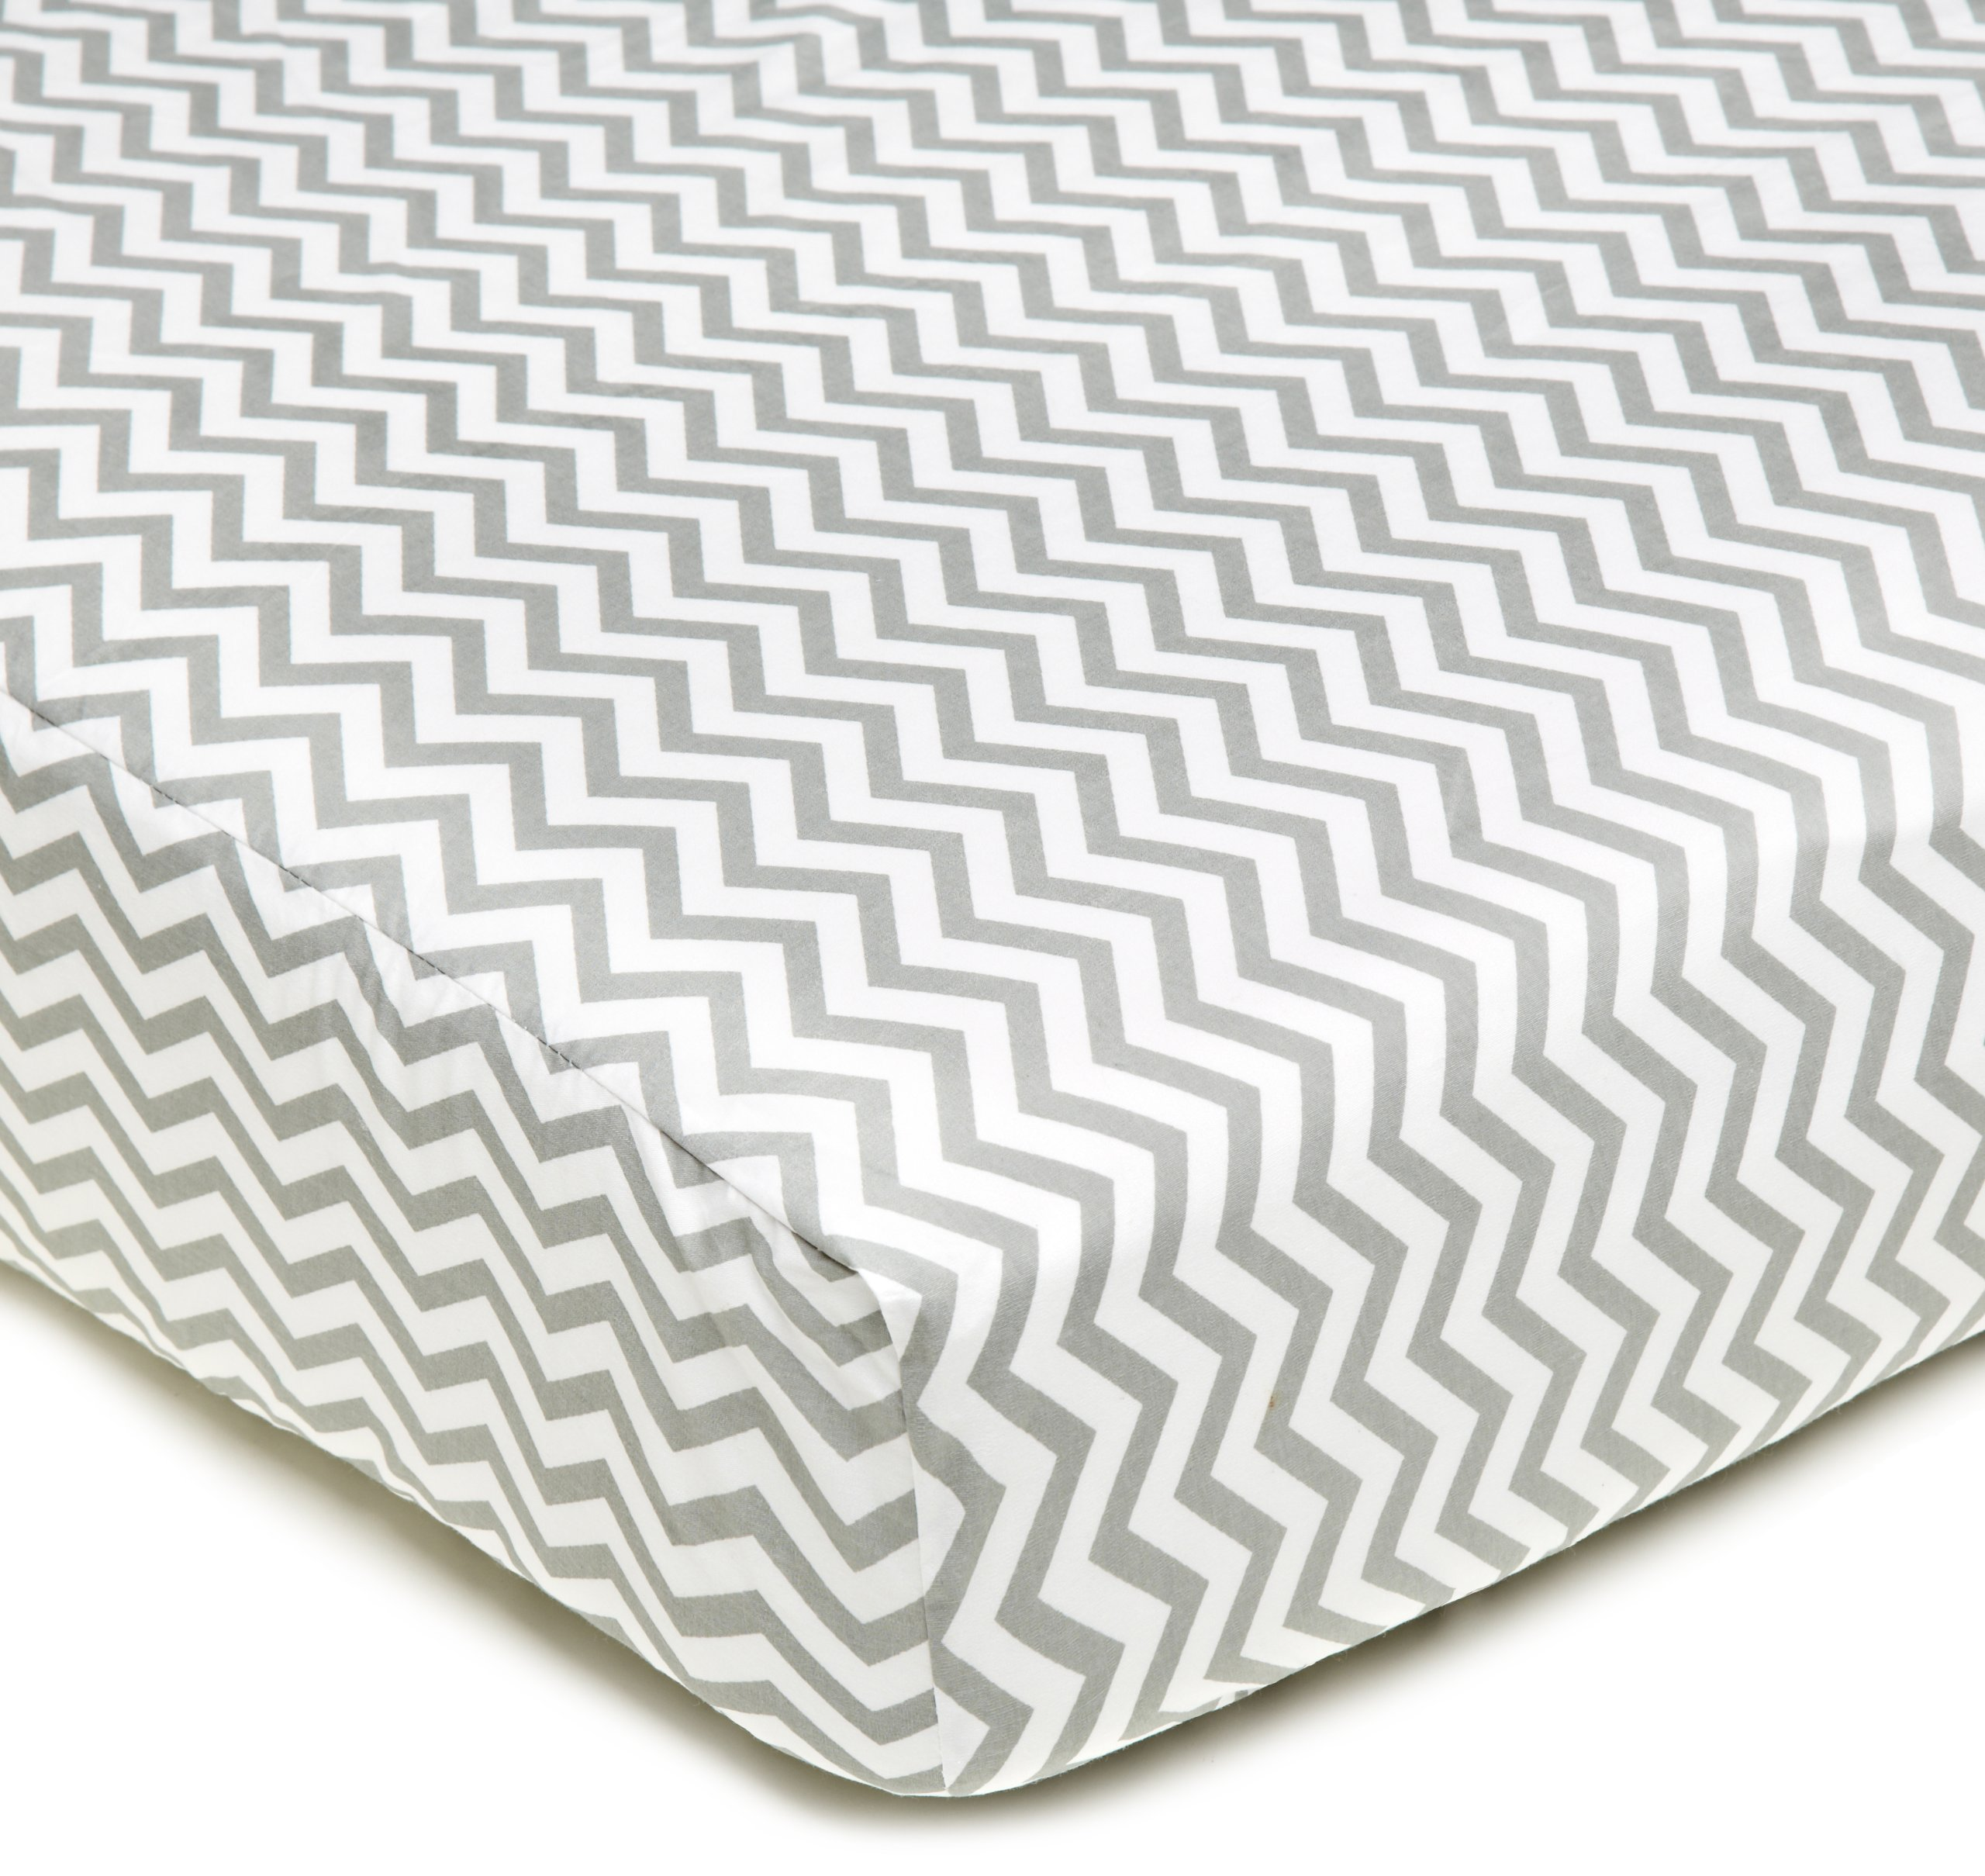 American Baby Company 100% Cotton Percale Fitted Crib Sheet for Standard Crib and Toddler Mattresses, Gray Zigzag